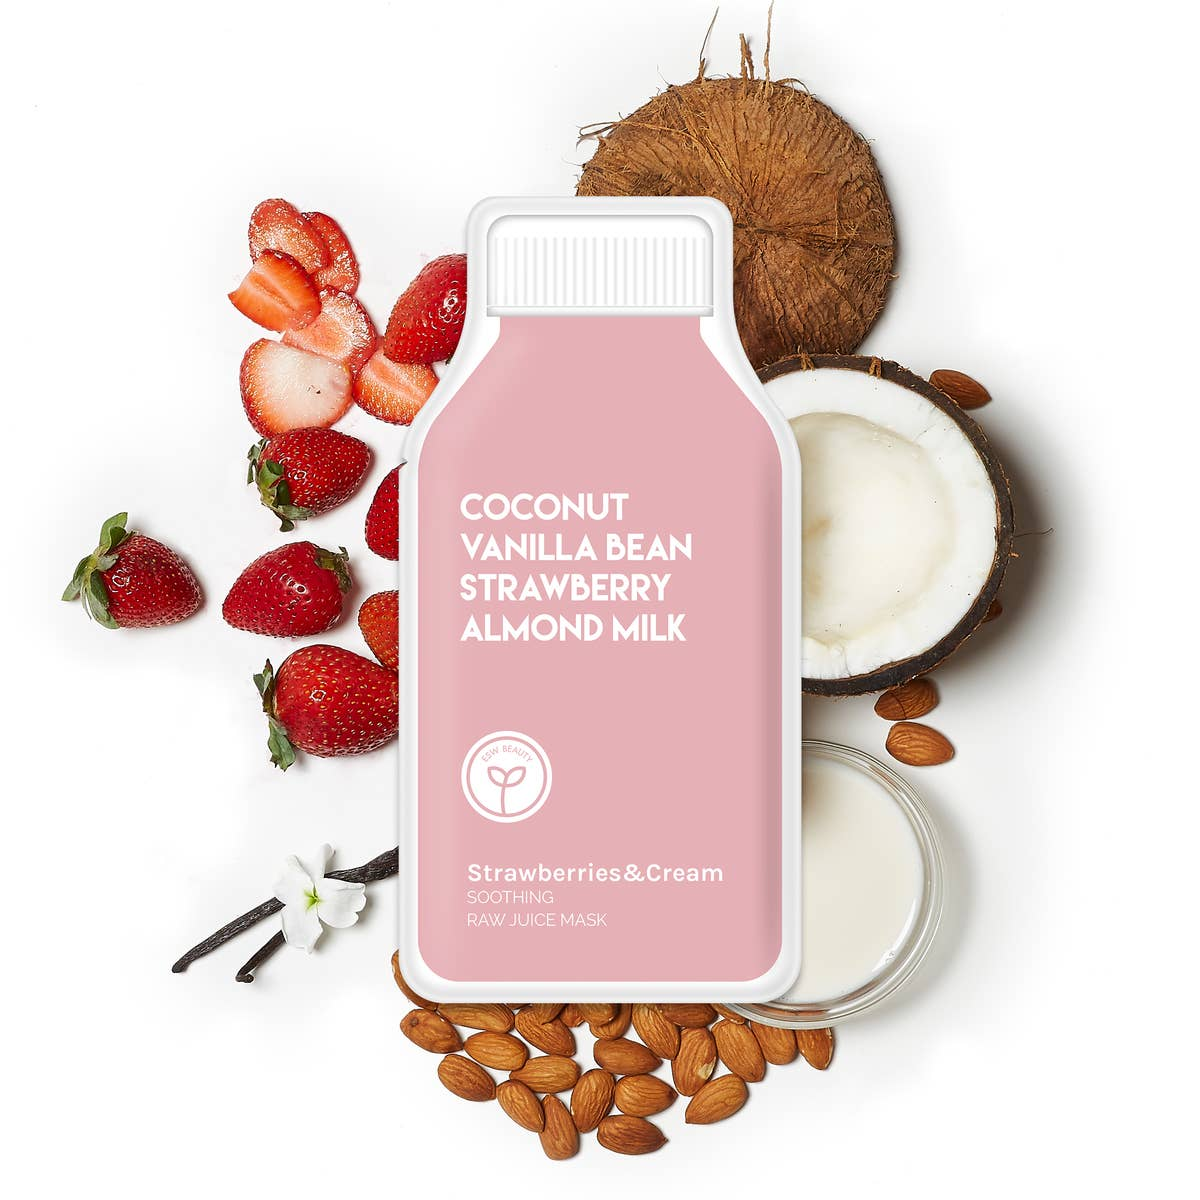 Strawberries & Cream Soothing Raw Juice Sheet Mask